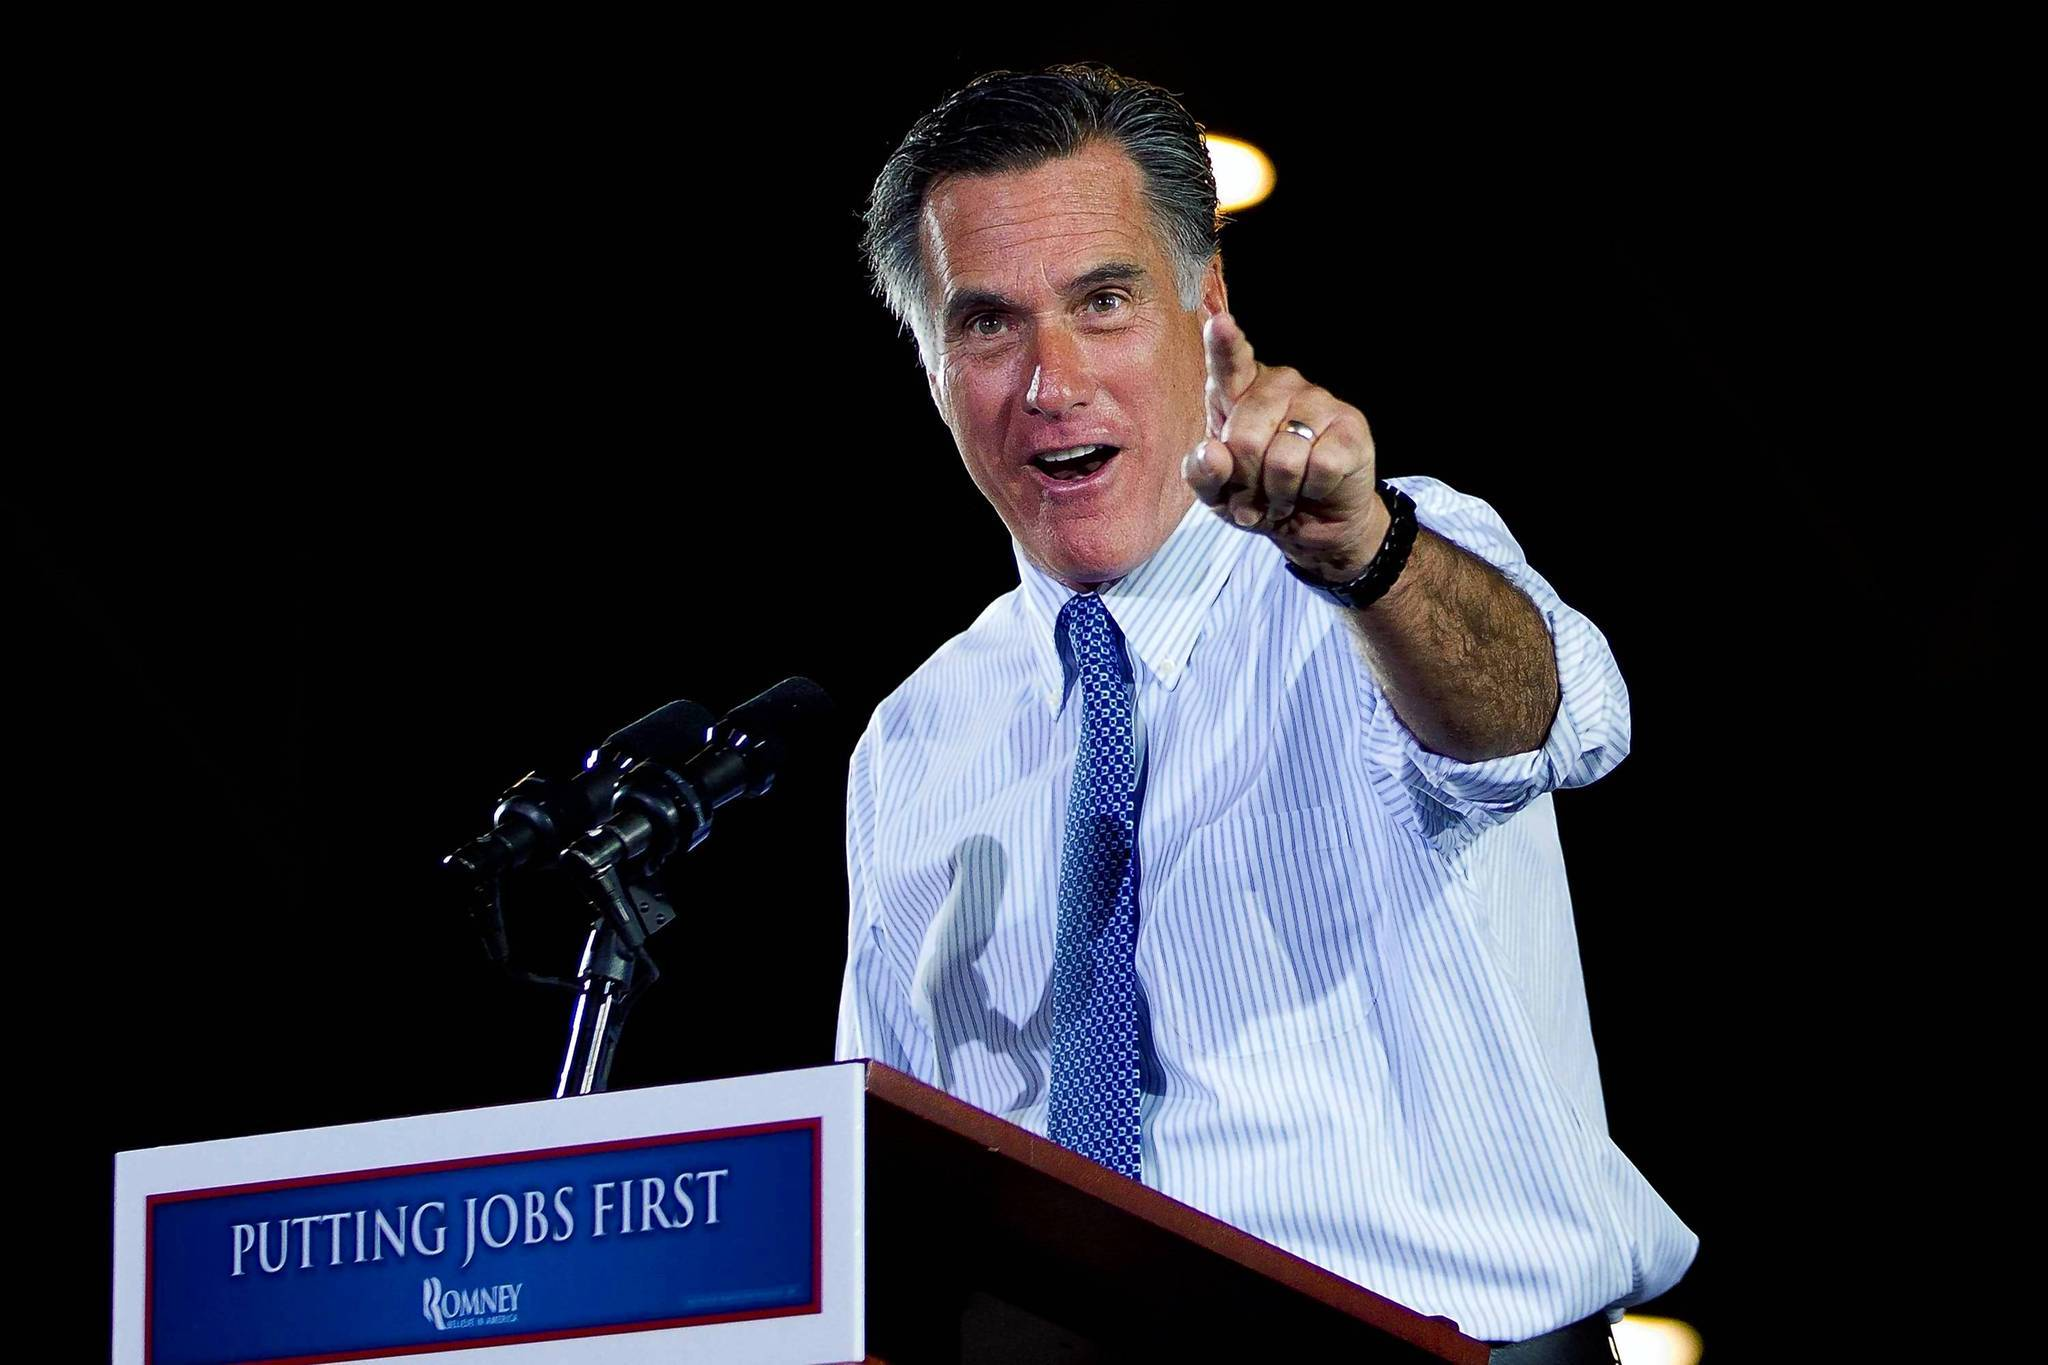 When Mitt Romney was Massachusetts governor, state spending rose by 22%, nearly double the rate of inflation.